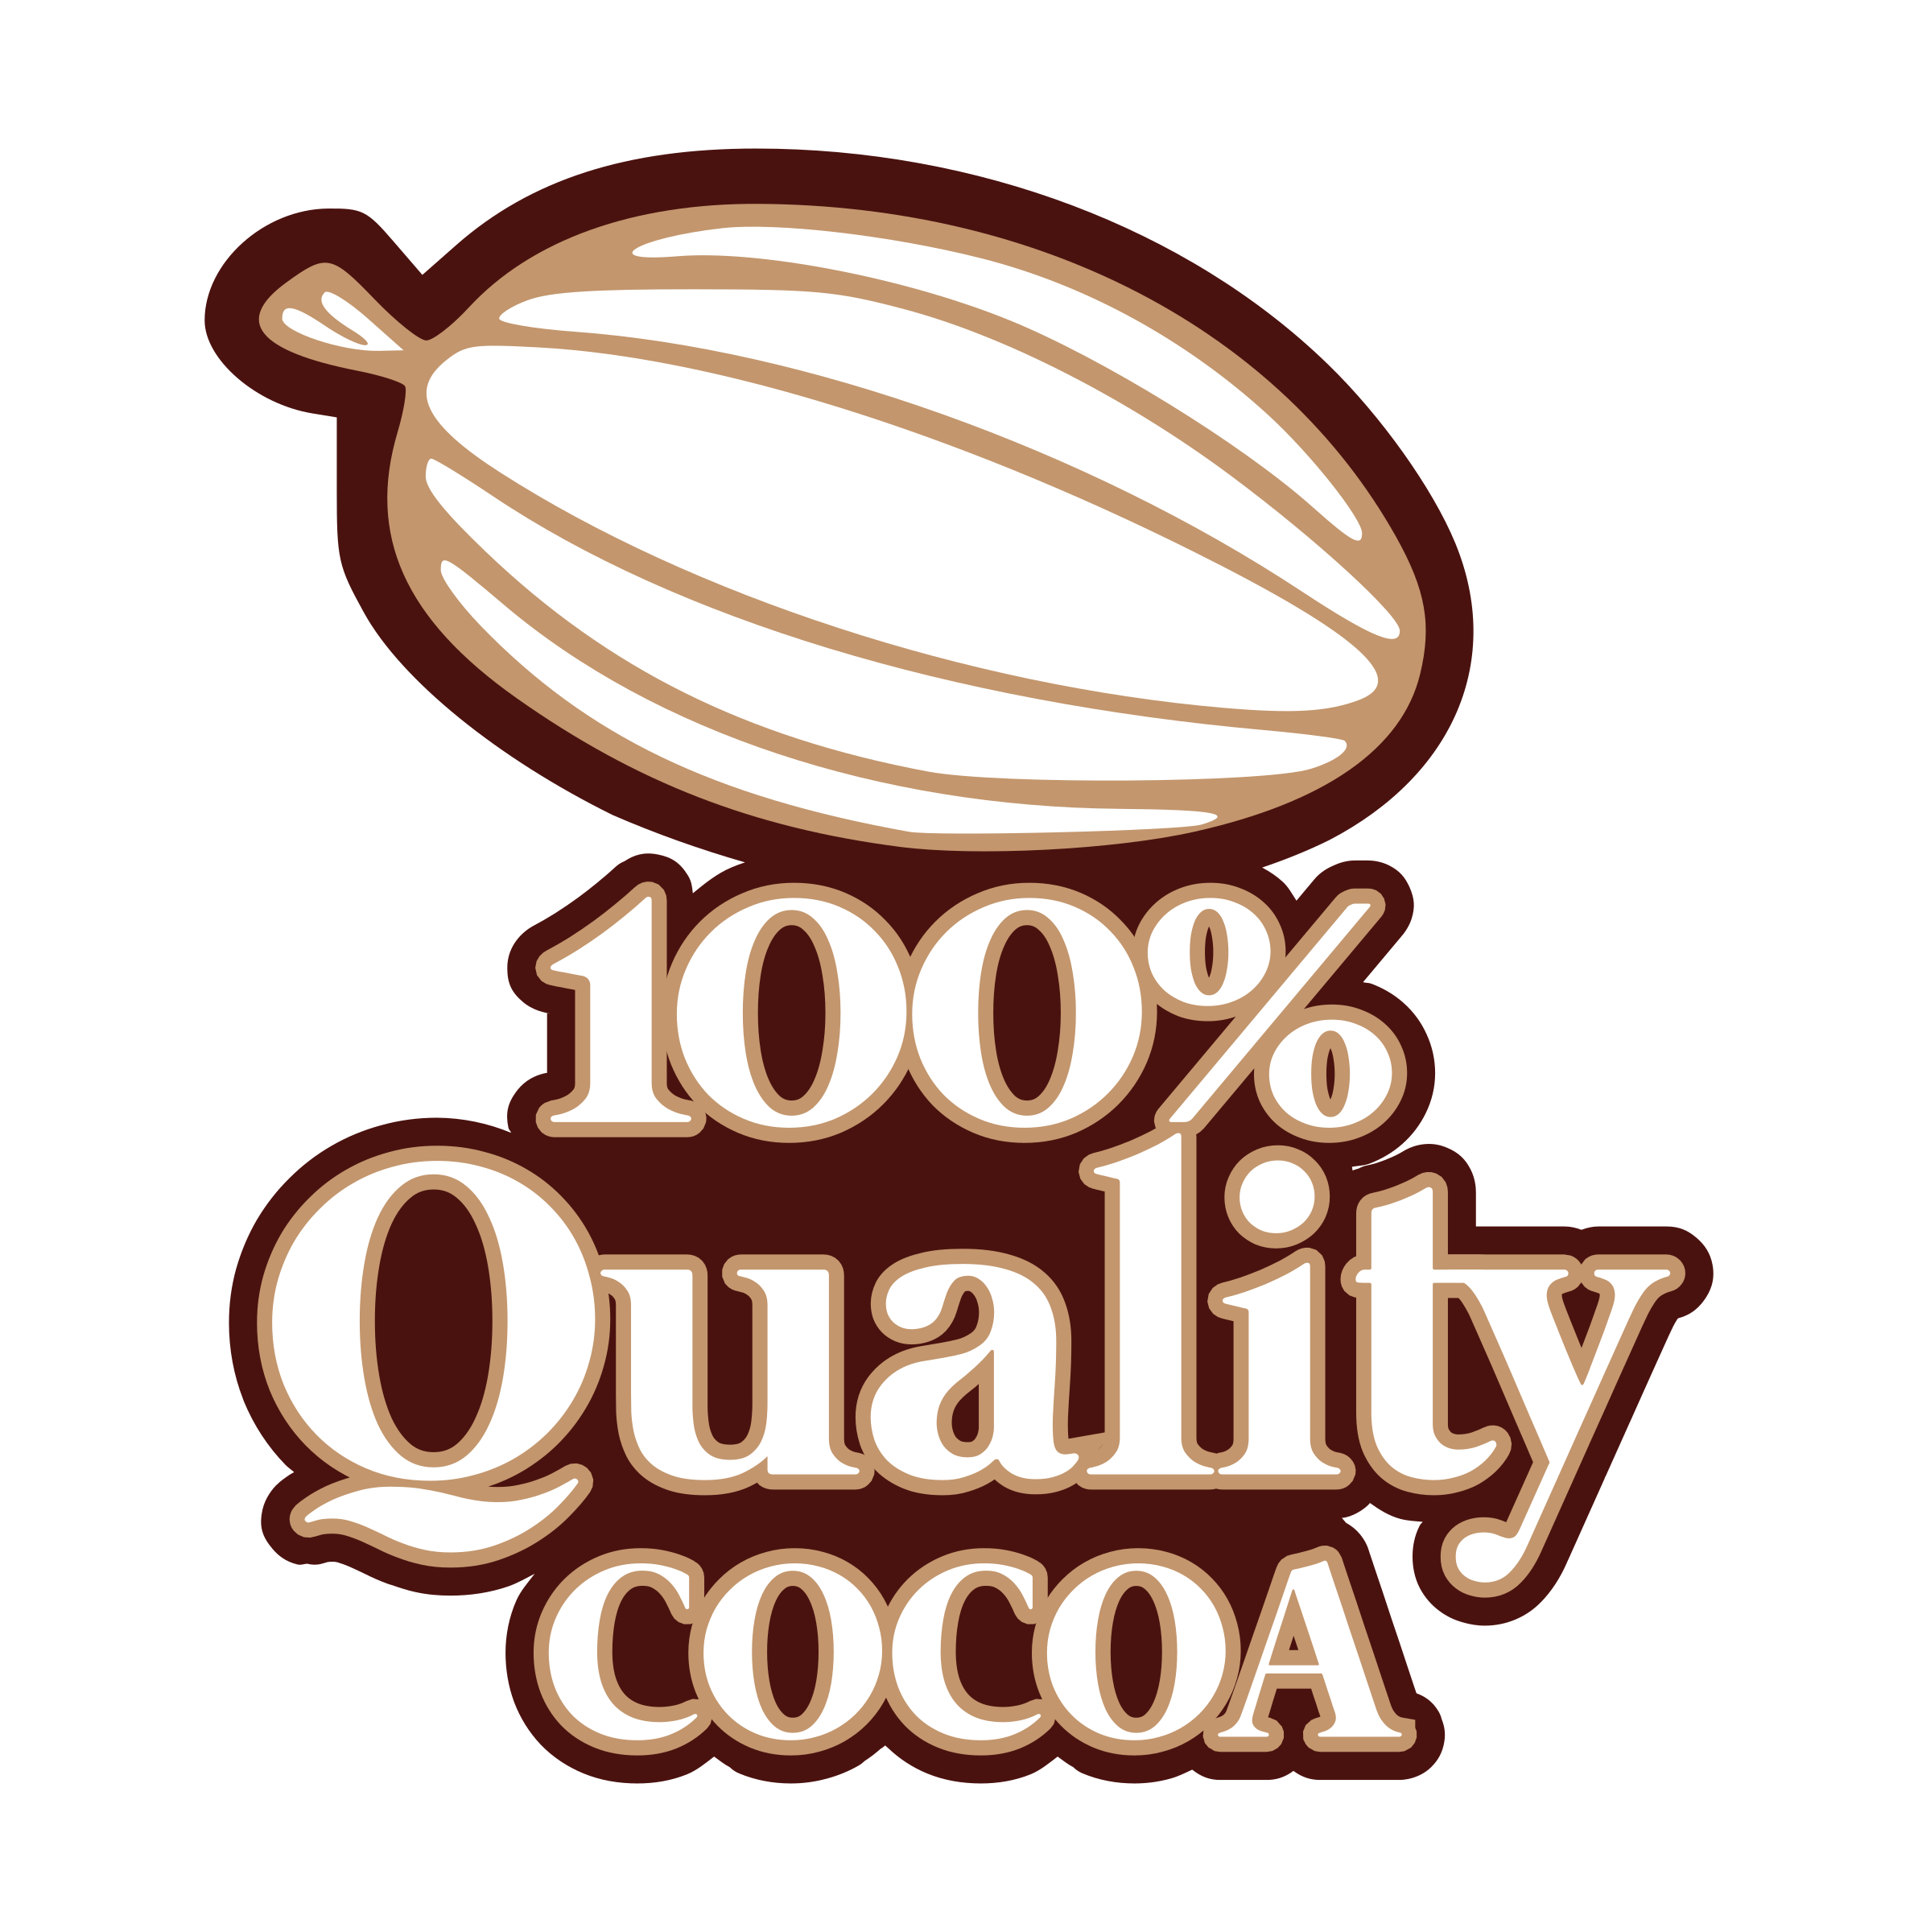 100 clipart quality. Cocoa big image png